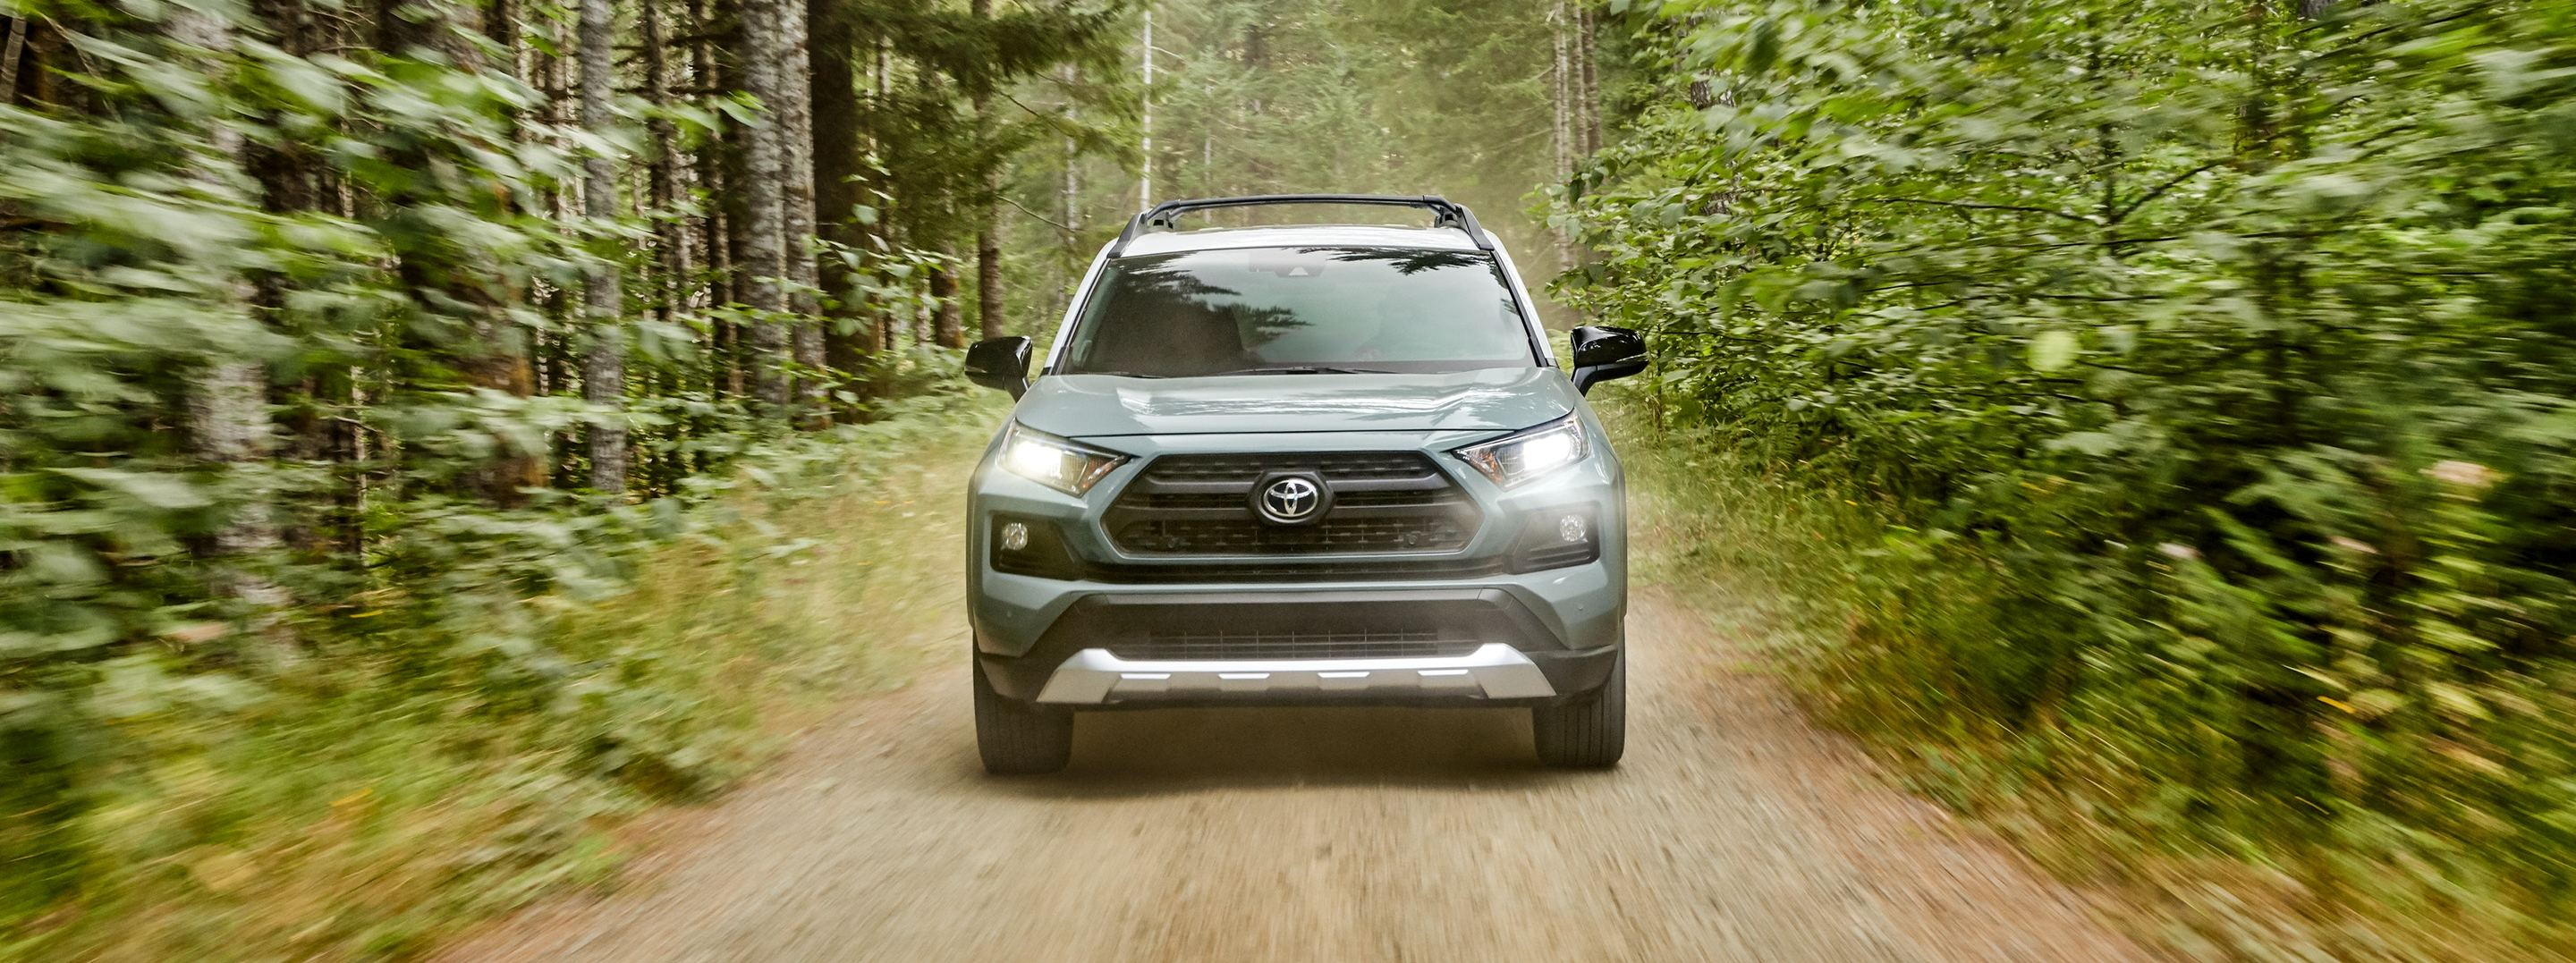 2019 Toyota RAV4 Trim Levels in New Castle, DE